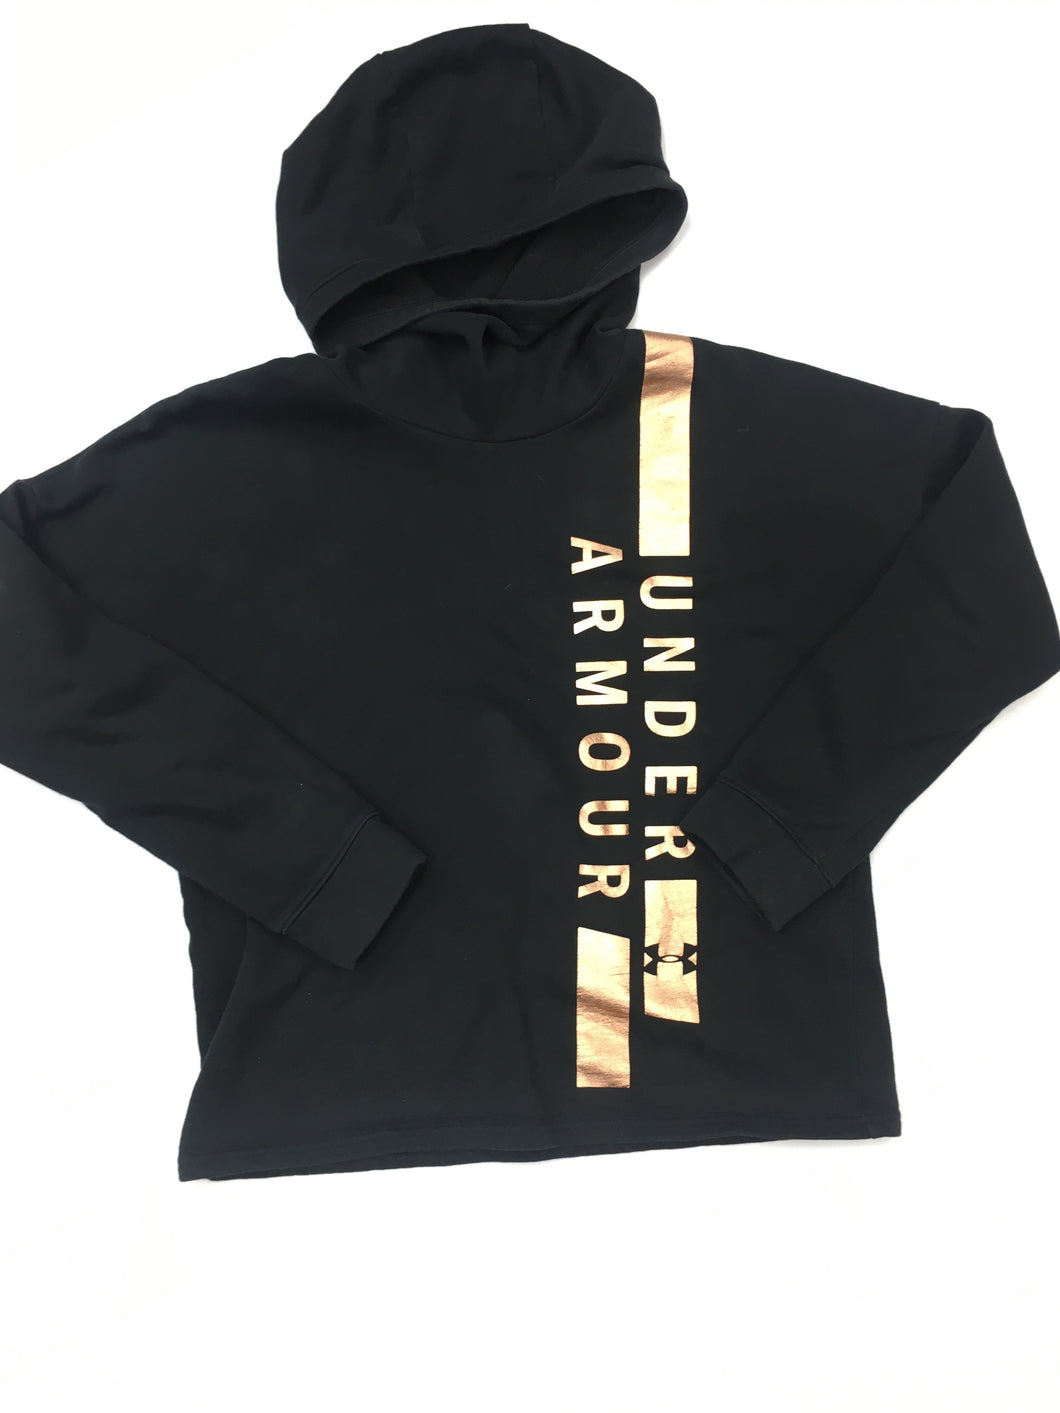 Under Armor Hooded Sweatshirt Women's S